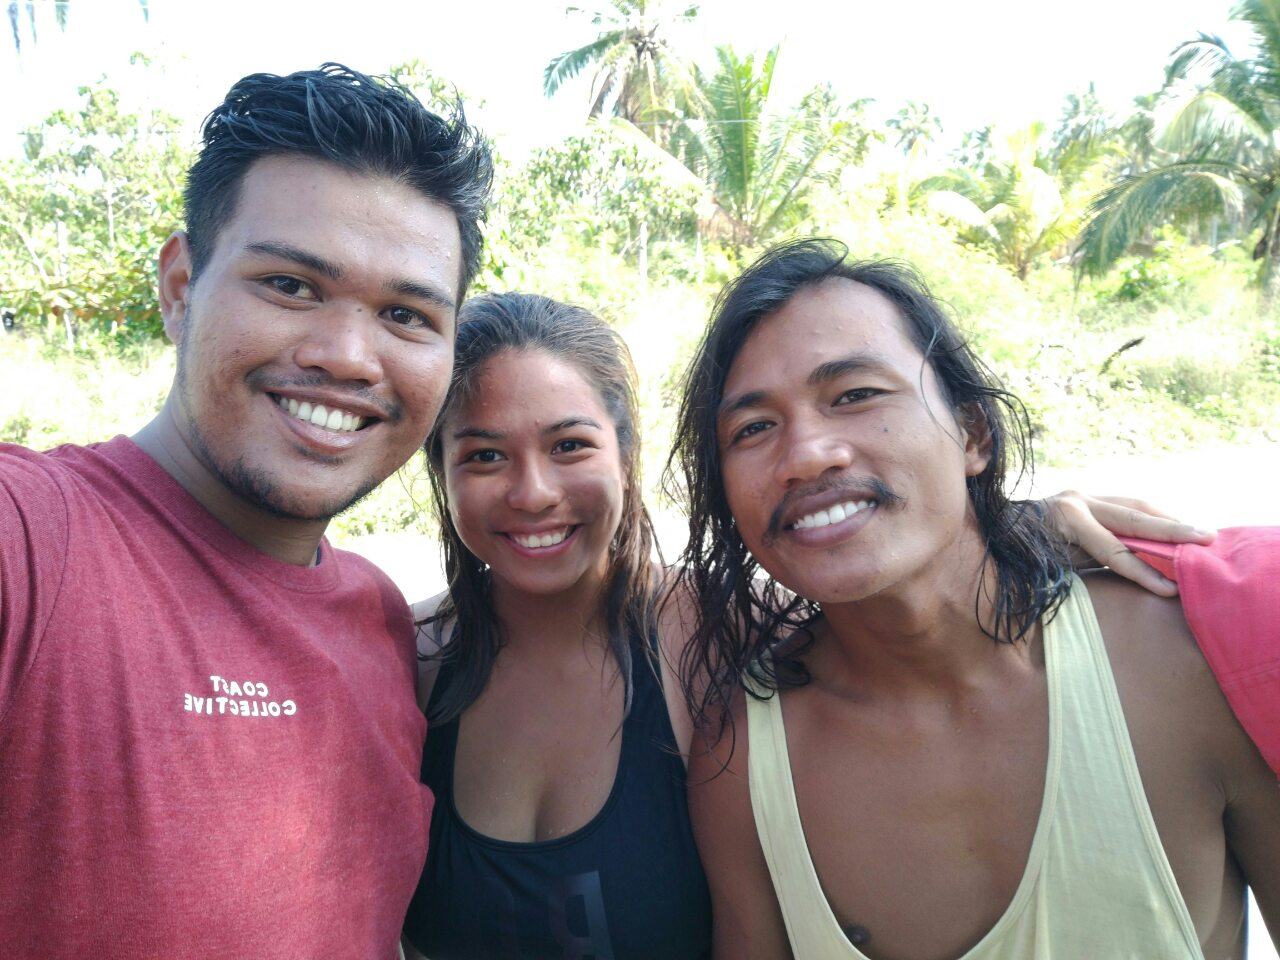 Carlos Mancupang of Balud Coffee House (in red), this mermaid and Connor Bautista of So Surf Mindanao.